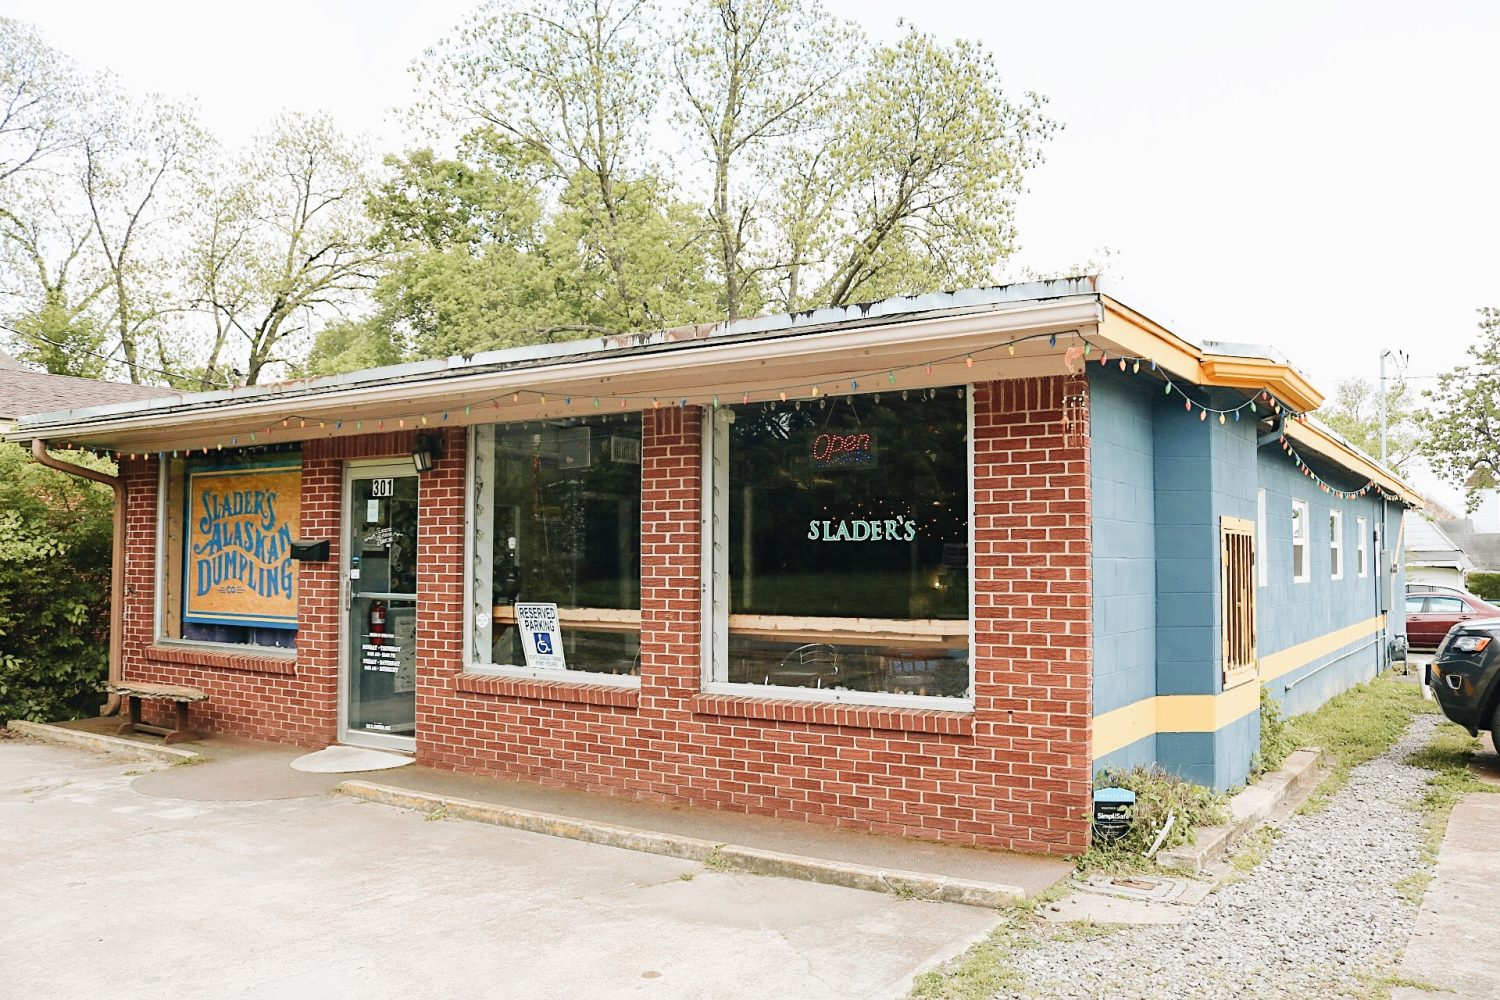 Shader's is in a quaint building just off the campus of Harding University, inside an old dry cleaners.